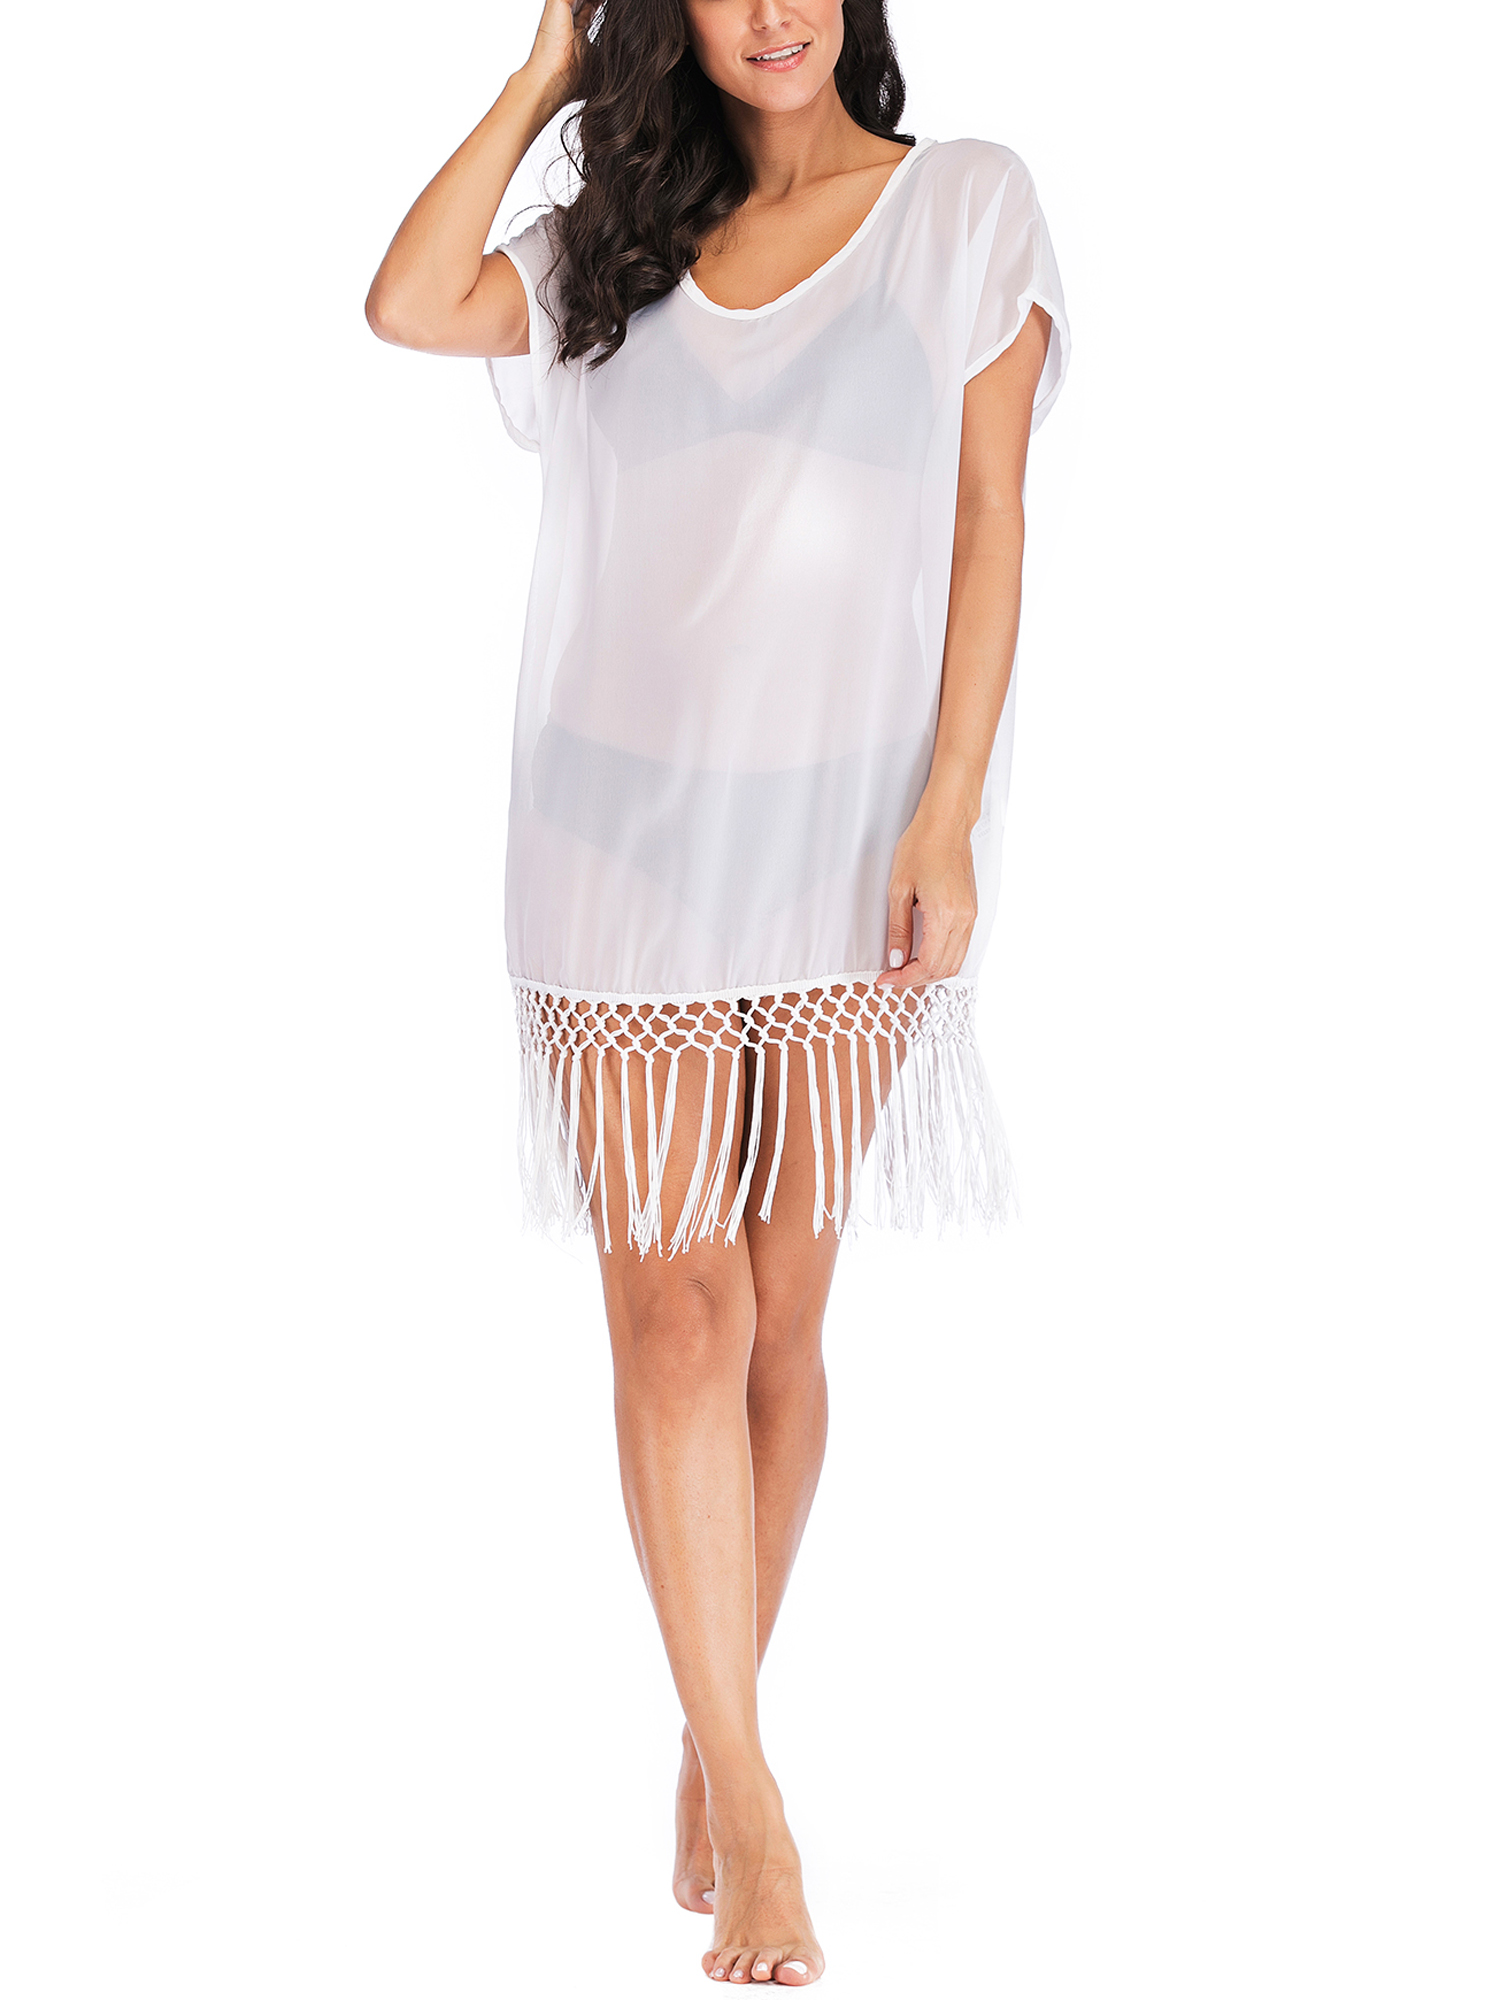 Swim Cover ups Women Bikini Beachwear V-neck Loose Beach Dress Tops Summer Bathing Suit with Tassels Irregular Hems Loose Fit Poncho